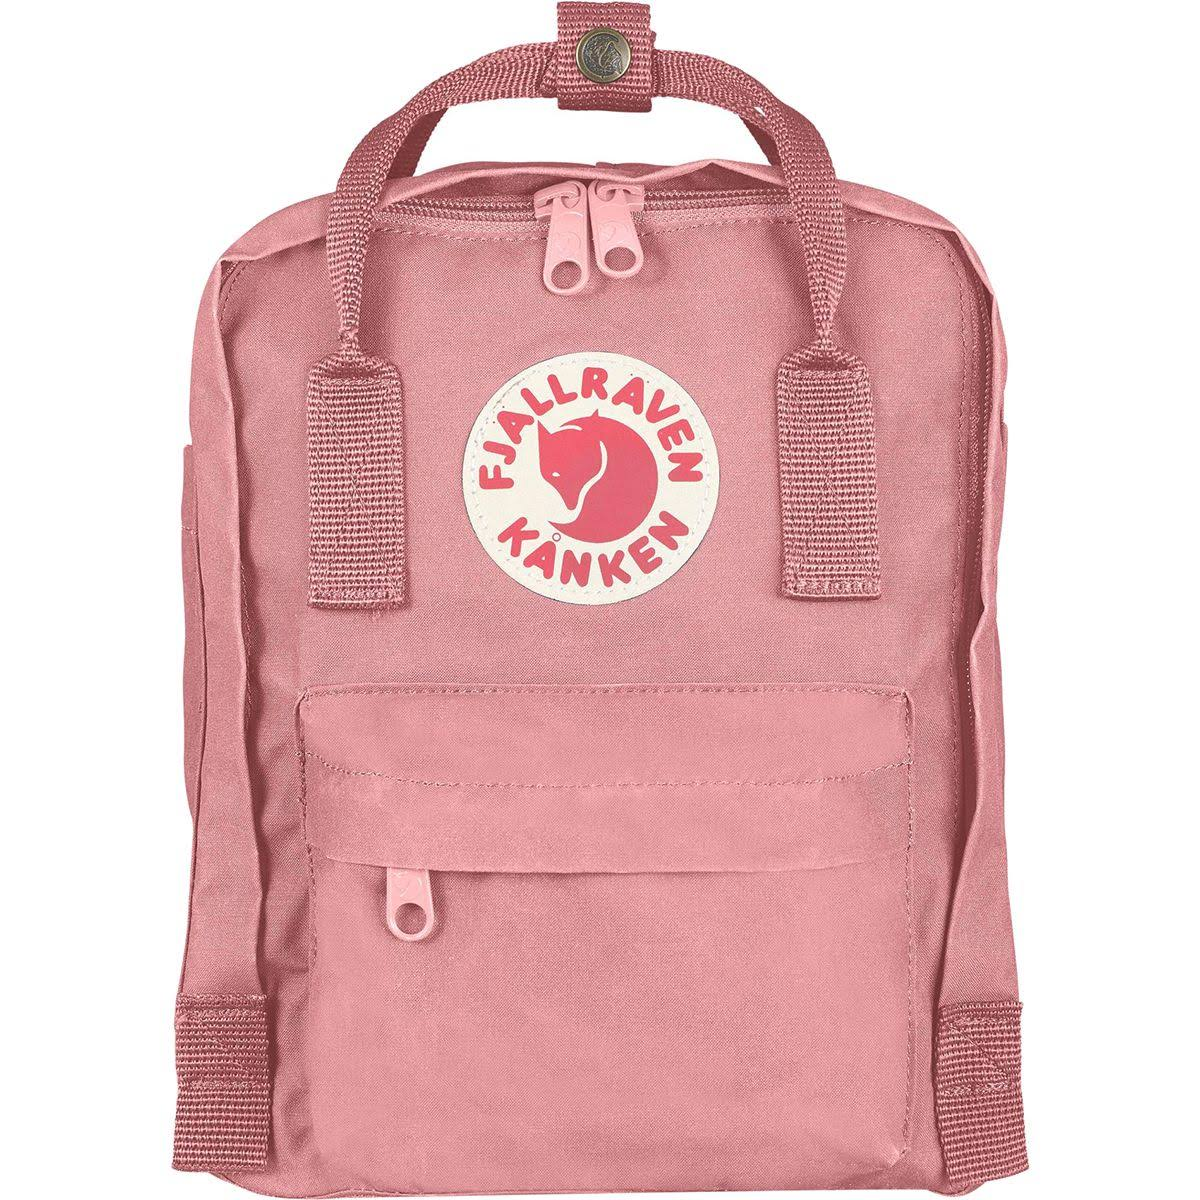 Fjallraven Kanken Mini Backpack, Pink